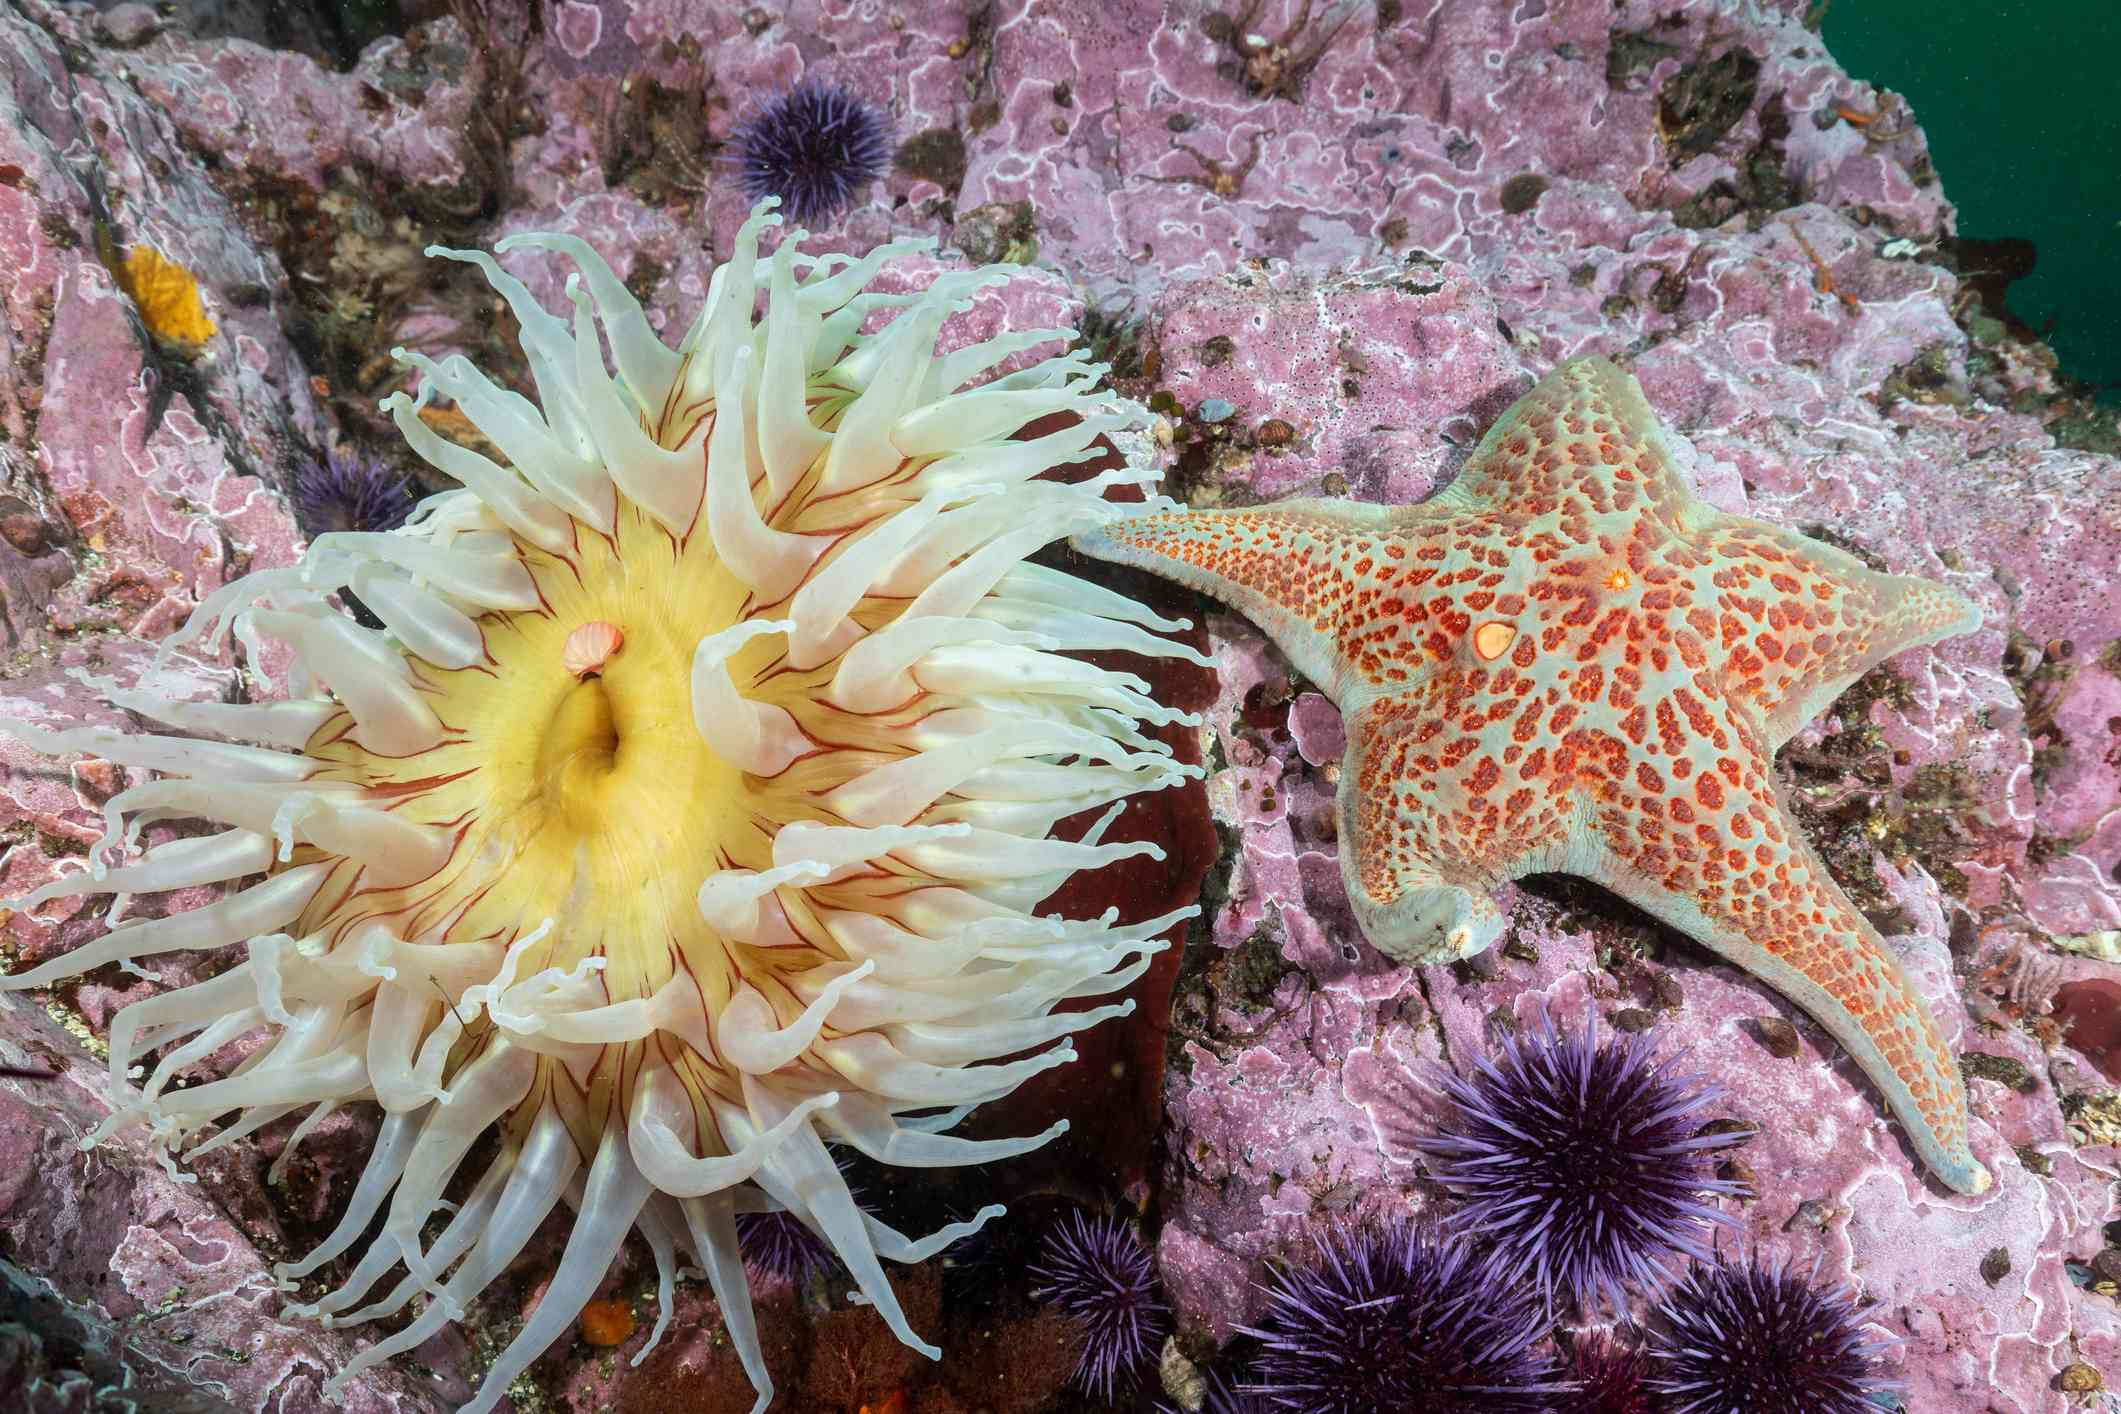 Leather starfish next to an anemone